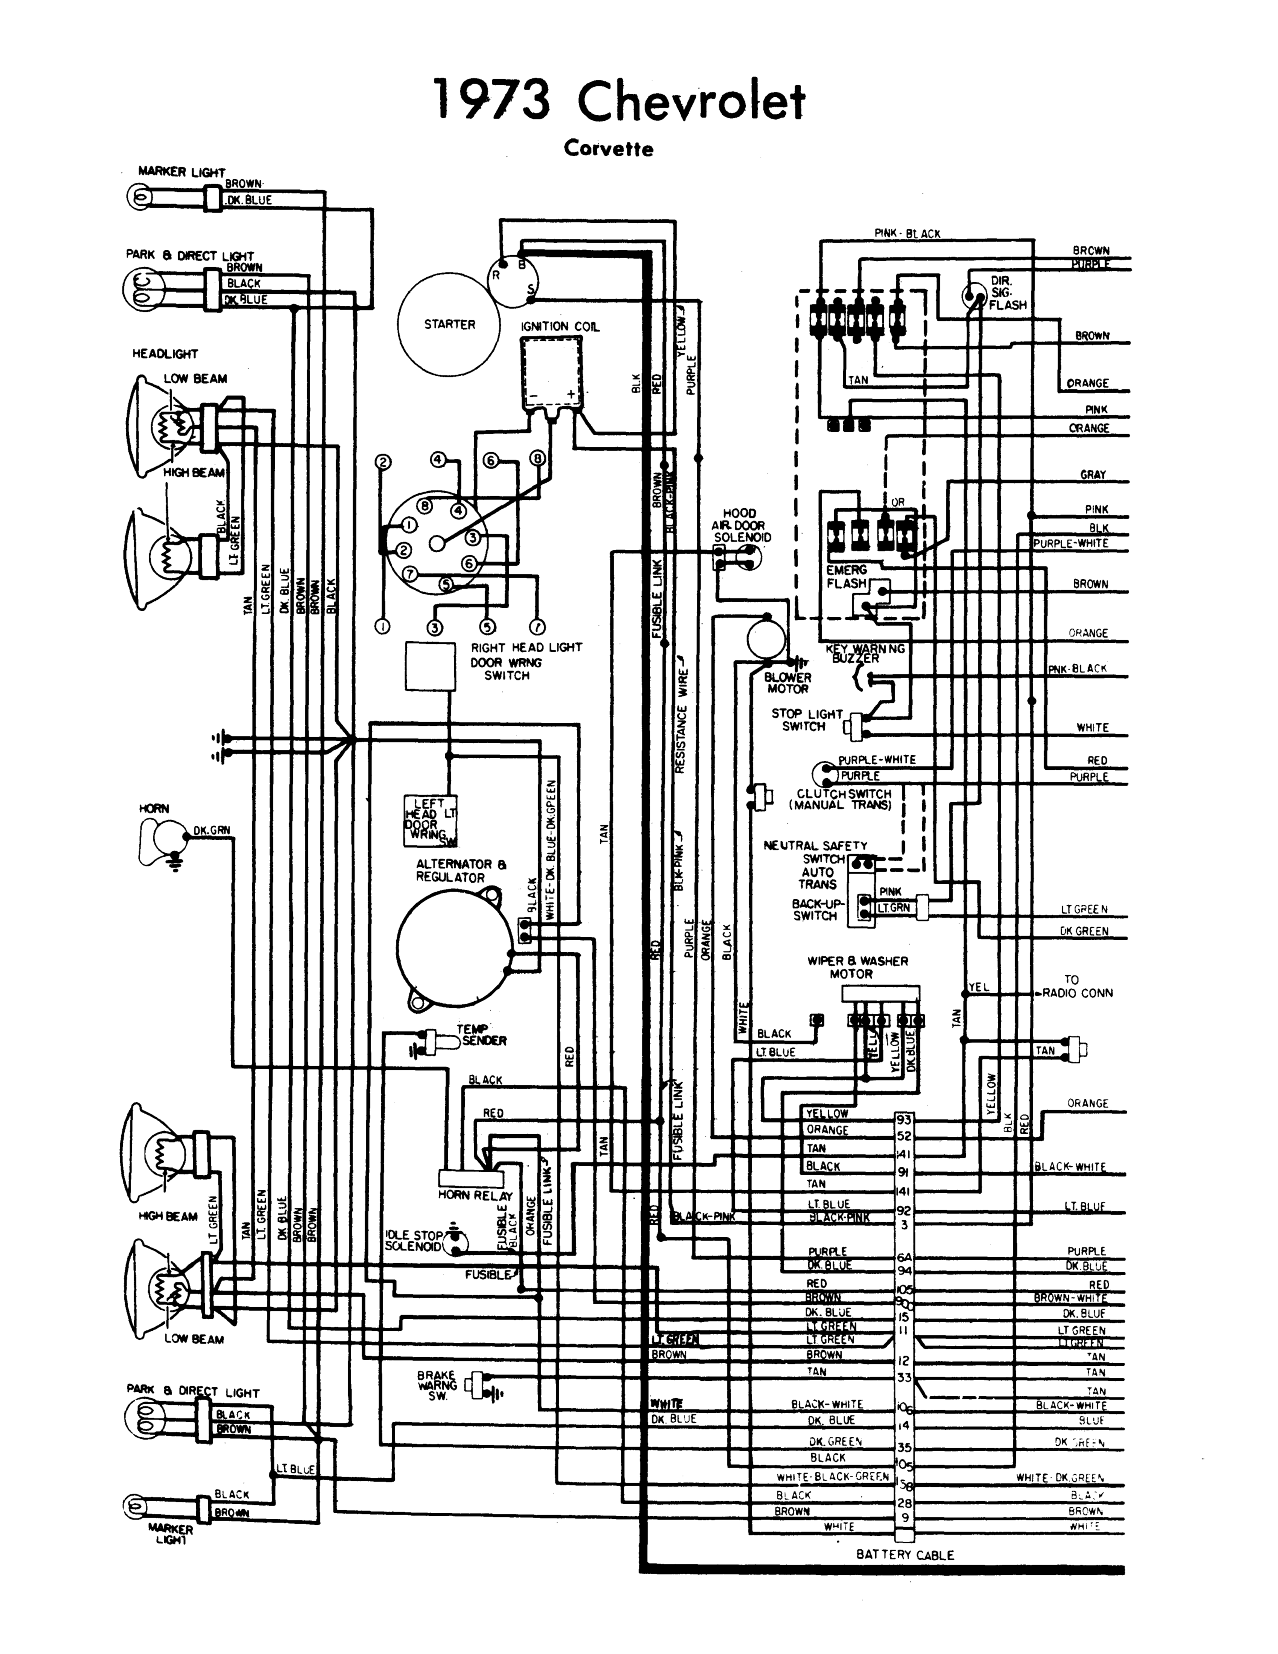 wiring diagram 1973 corvette Chevy Corvette 1973 Wiring